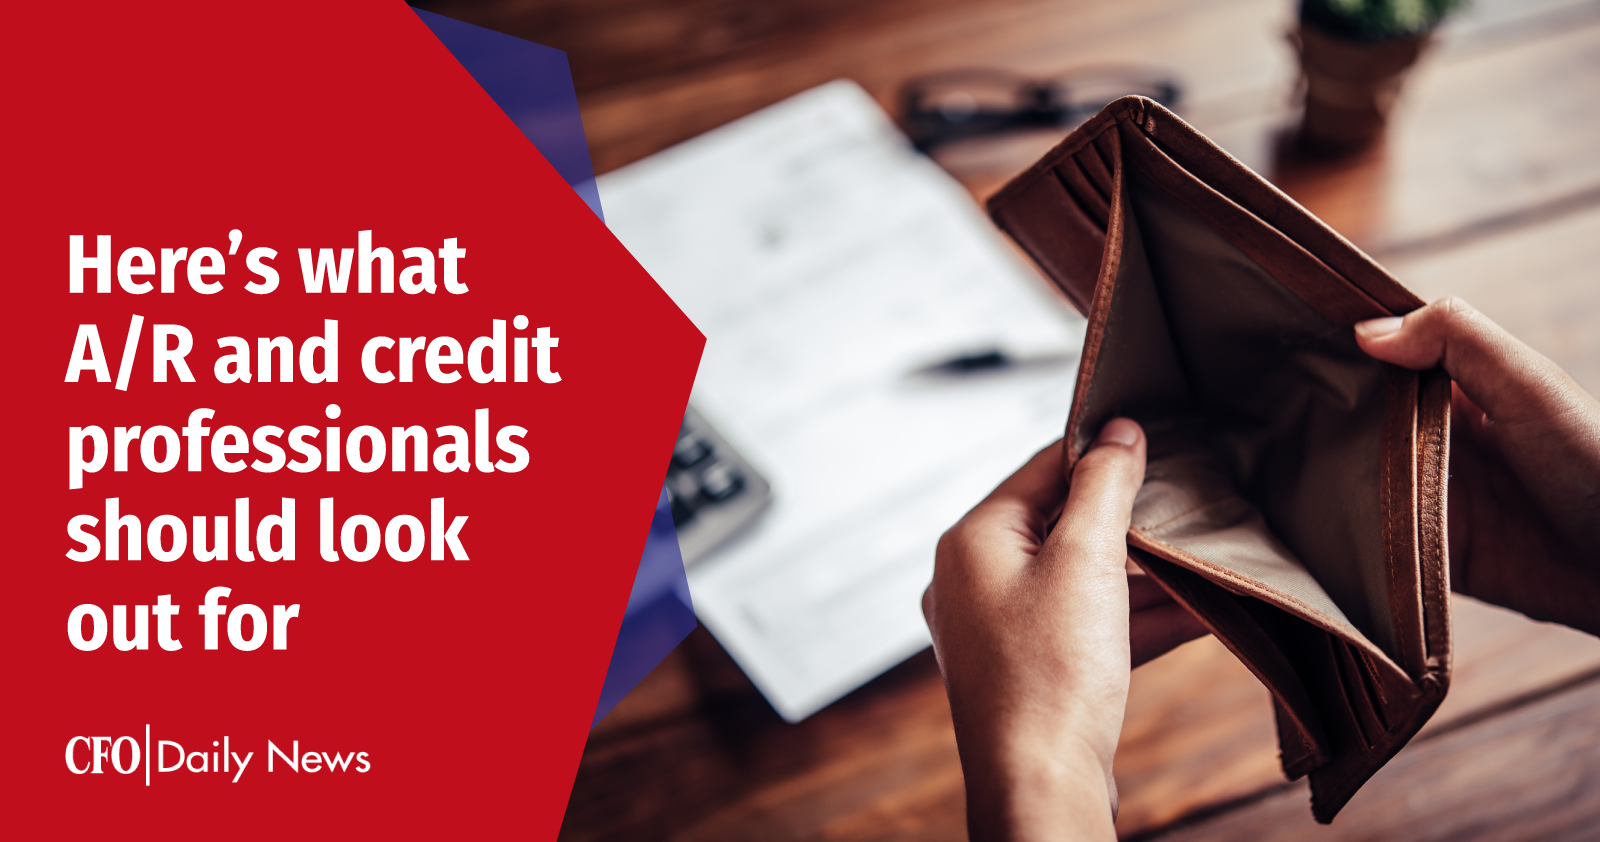 Here's What A/R And Credit Professionals Should Look Out For